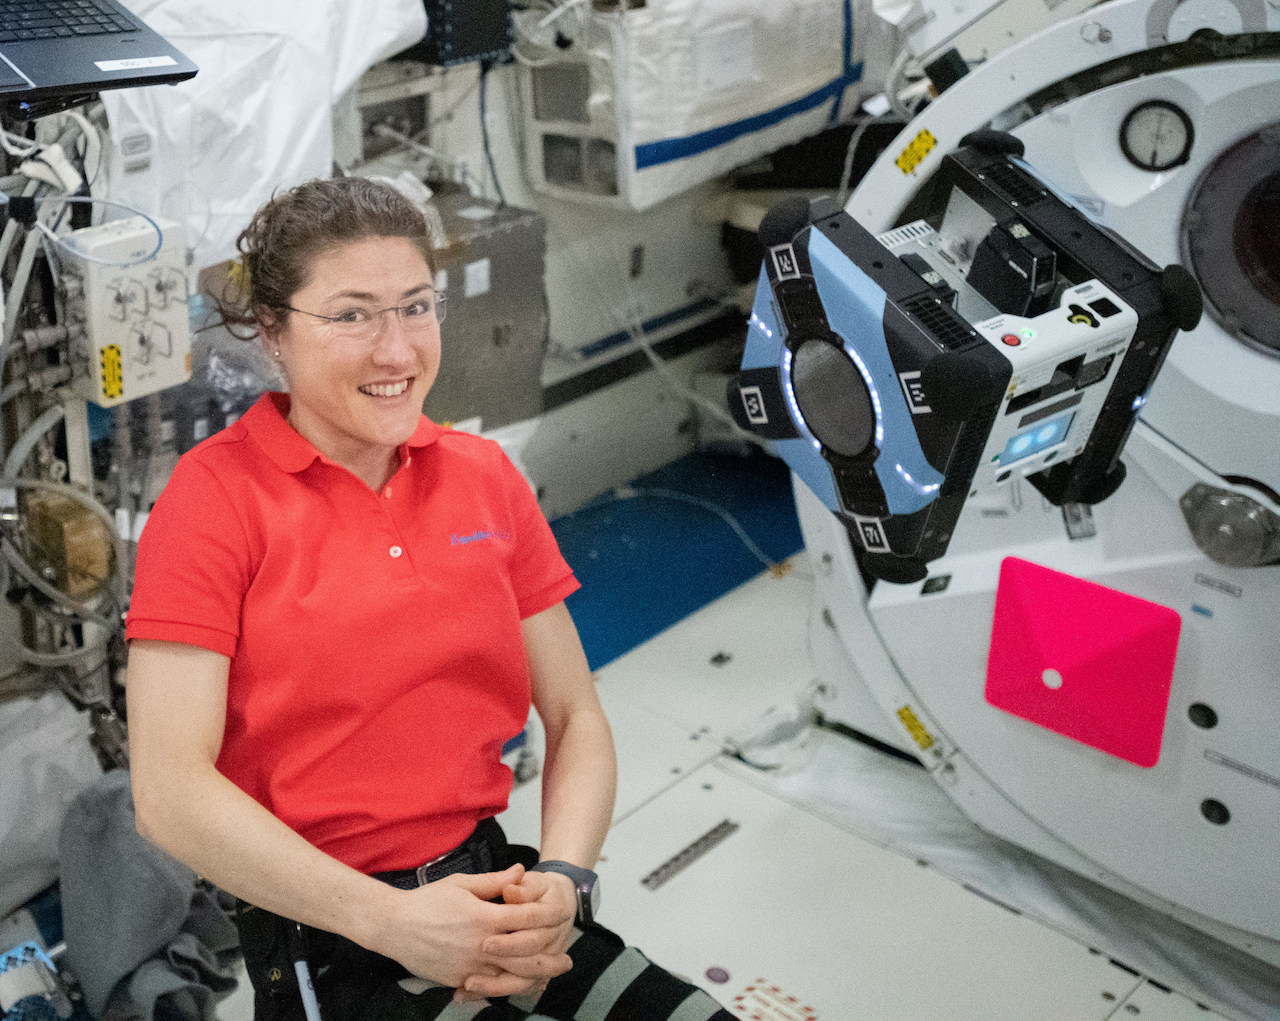 Expedition 60 Flight Engineer Christina Koch of NASA works inside Japan's Kibo laboratory module monitoring a mobility test of the free-flying Astrobee robotic assistant.